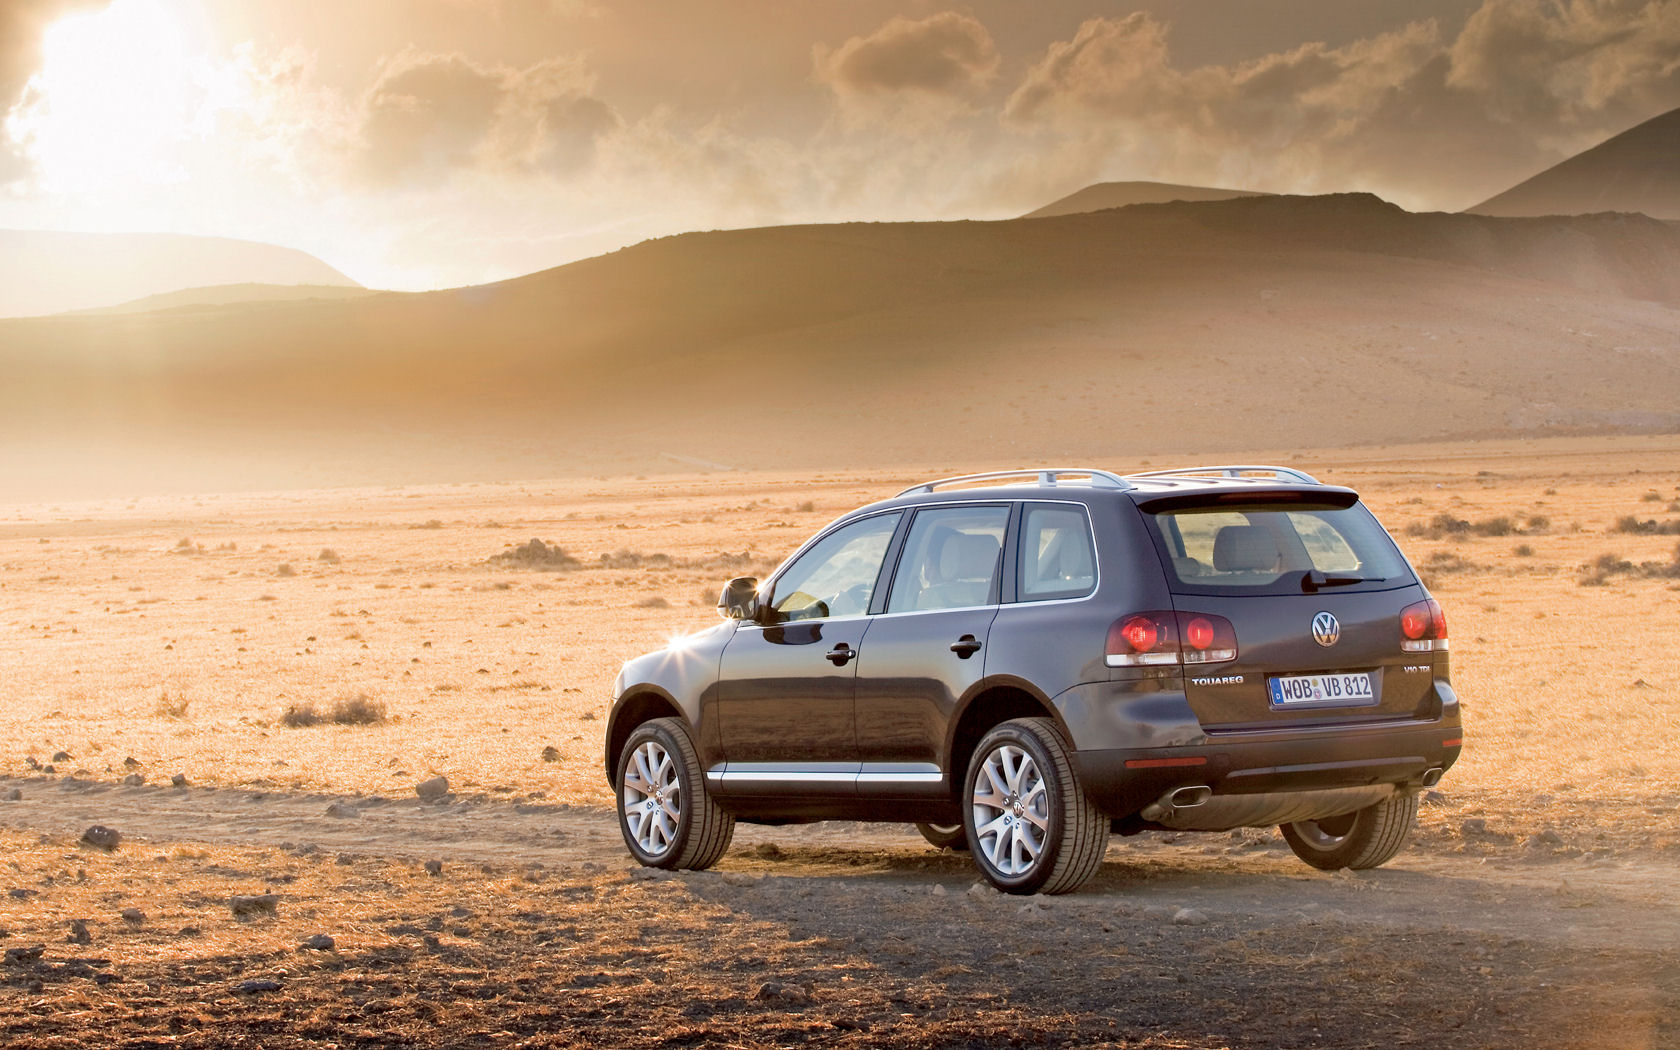 guarantees that the enormous power potential of the abt touareg can be handled while